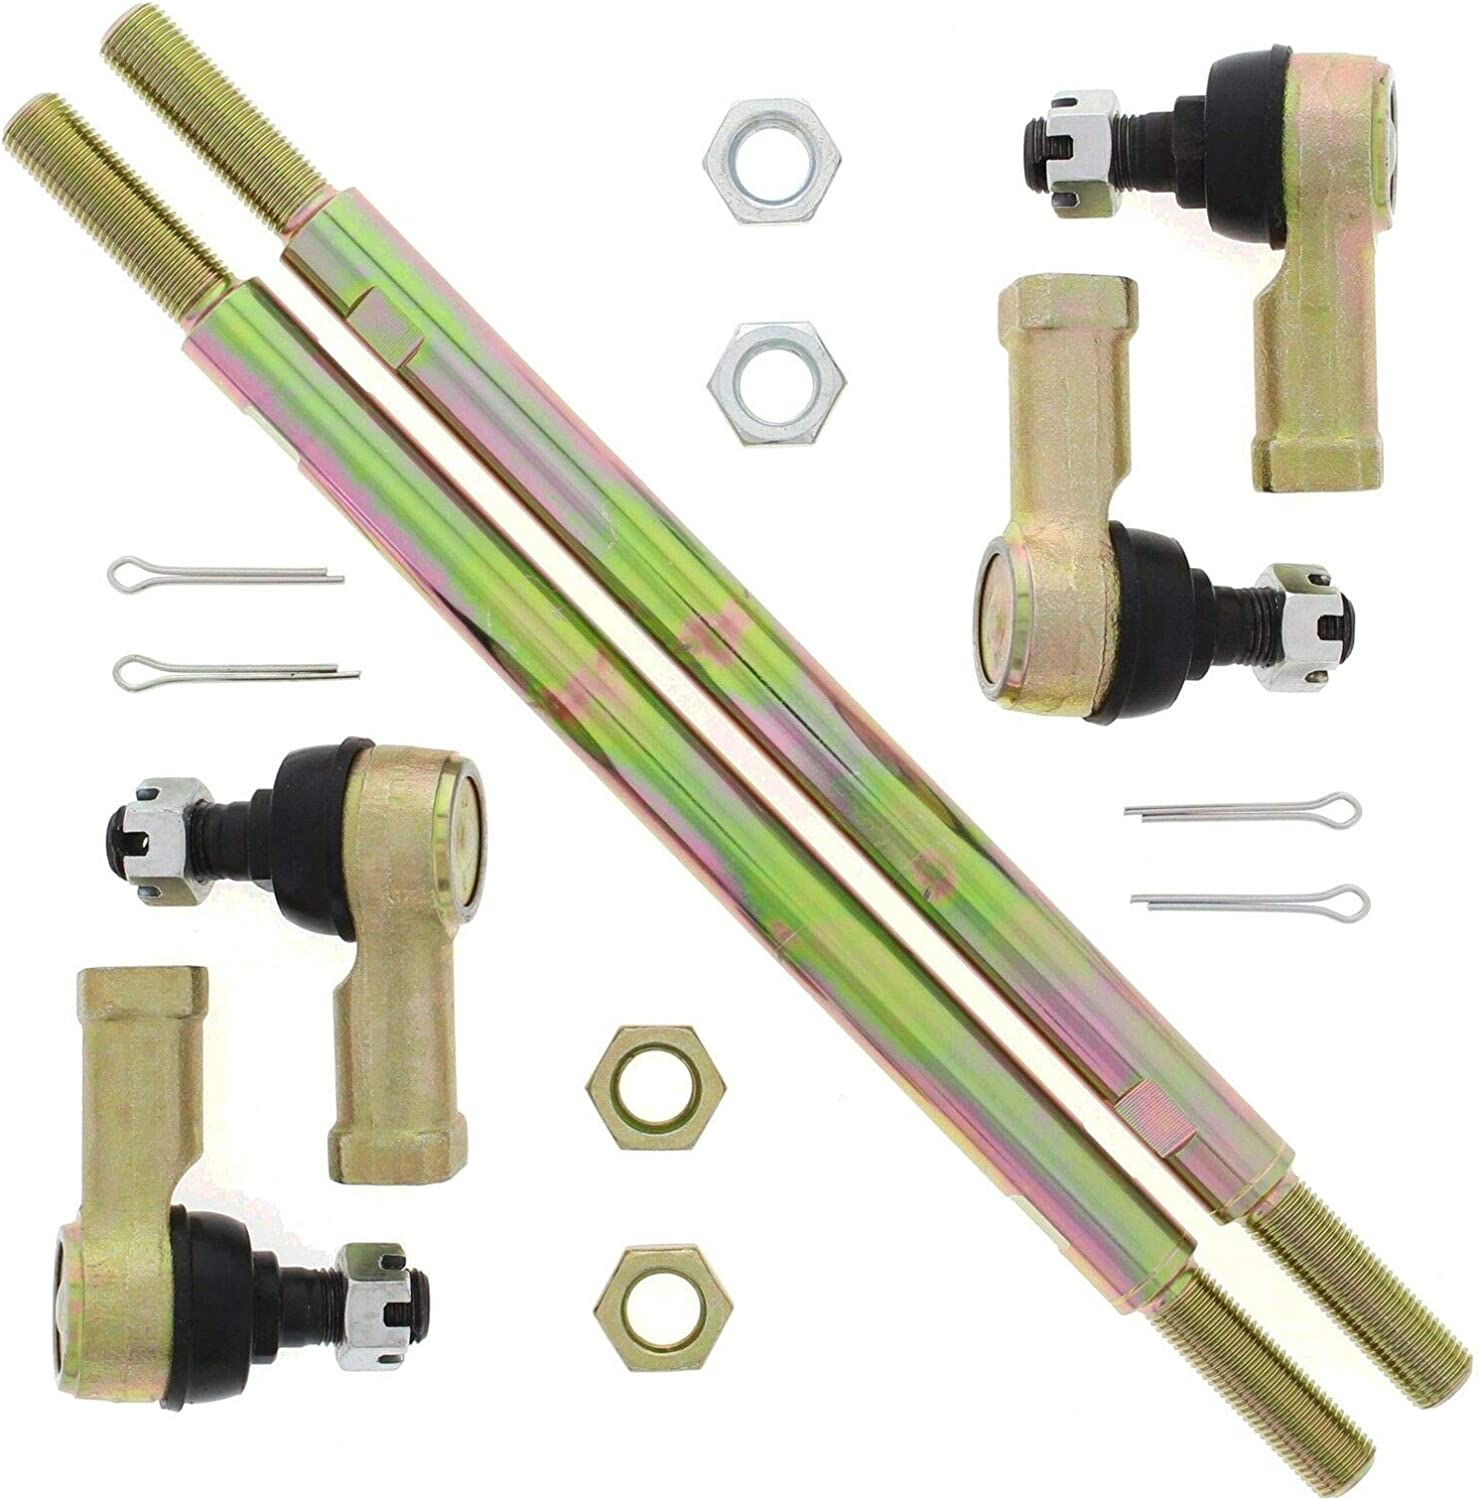 New Tie Rod Upgrade Kit Replacement For Yamaha YFM45FX Wolverine 450 4X4 450cc 06 07 08 09 10